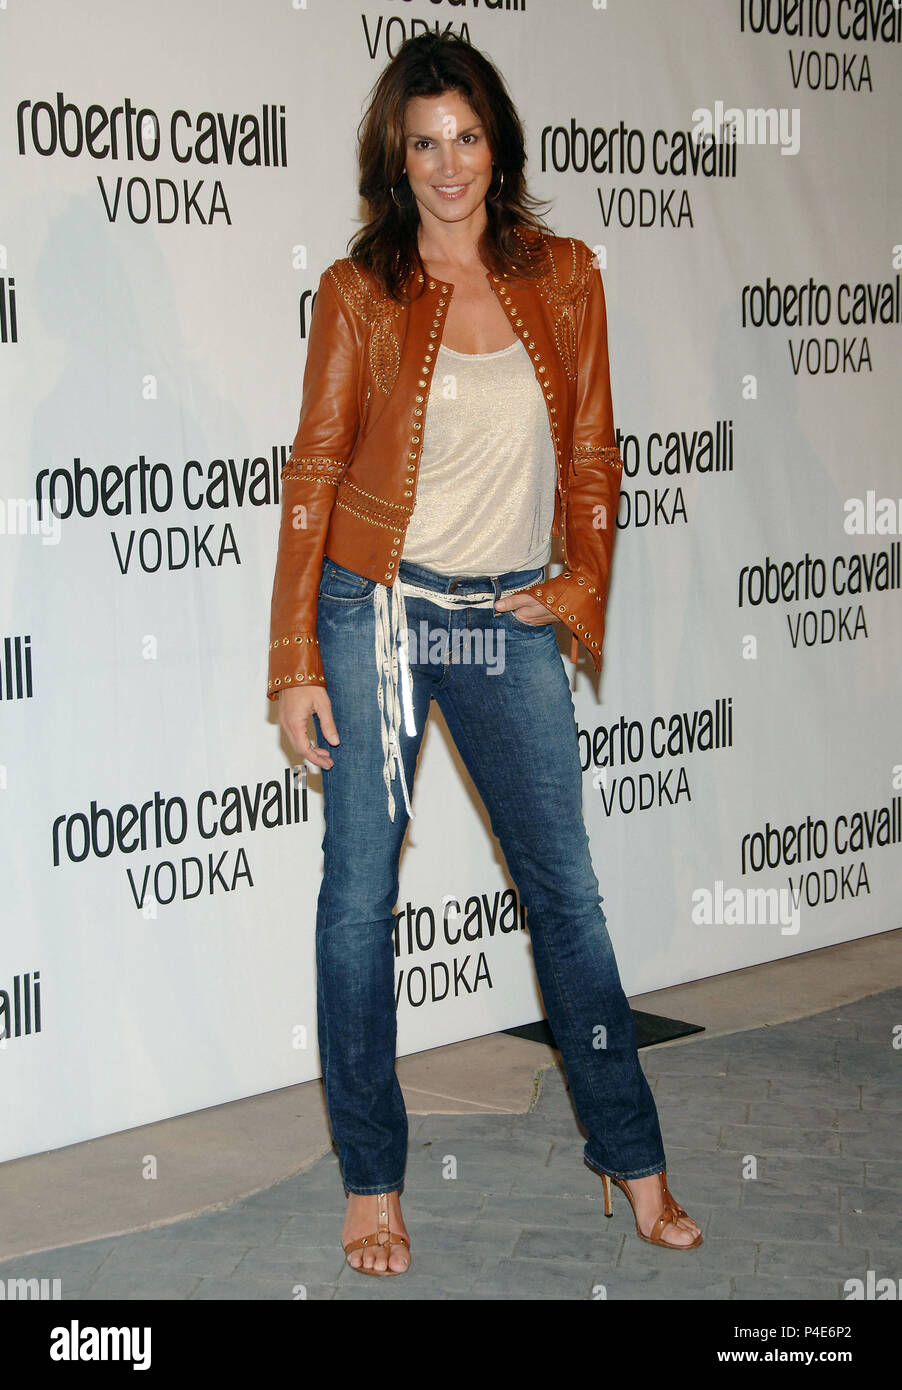 Cindy Crawford arriving at the Roberto Cavalli Vodka Launch Party In Beverly Hills Los Angeles. May 11, 2006.03_CrawfordCindy026 Red Carpet Event, Vertical, USA, Film Industry, Celebrities,  Photography, Bestof, Arts Culture and Entertainment, Topix Celebrities fashion /  Vertical, Best of, Event in Hollywood Life - California,  Red Carpet and backstage, USA, Film Industry, Celebrities,  movie celebrities, TV celebrities, Music celebrities, Photography, Bestof, Arts Culture and Entertainment,  Topix, vertical, one person,, from the year , 2006, inquiry tsuni@Gamma-USA.com Fashion - Full Length - Stock Image